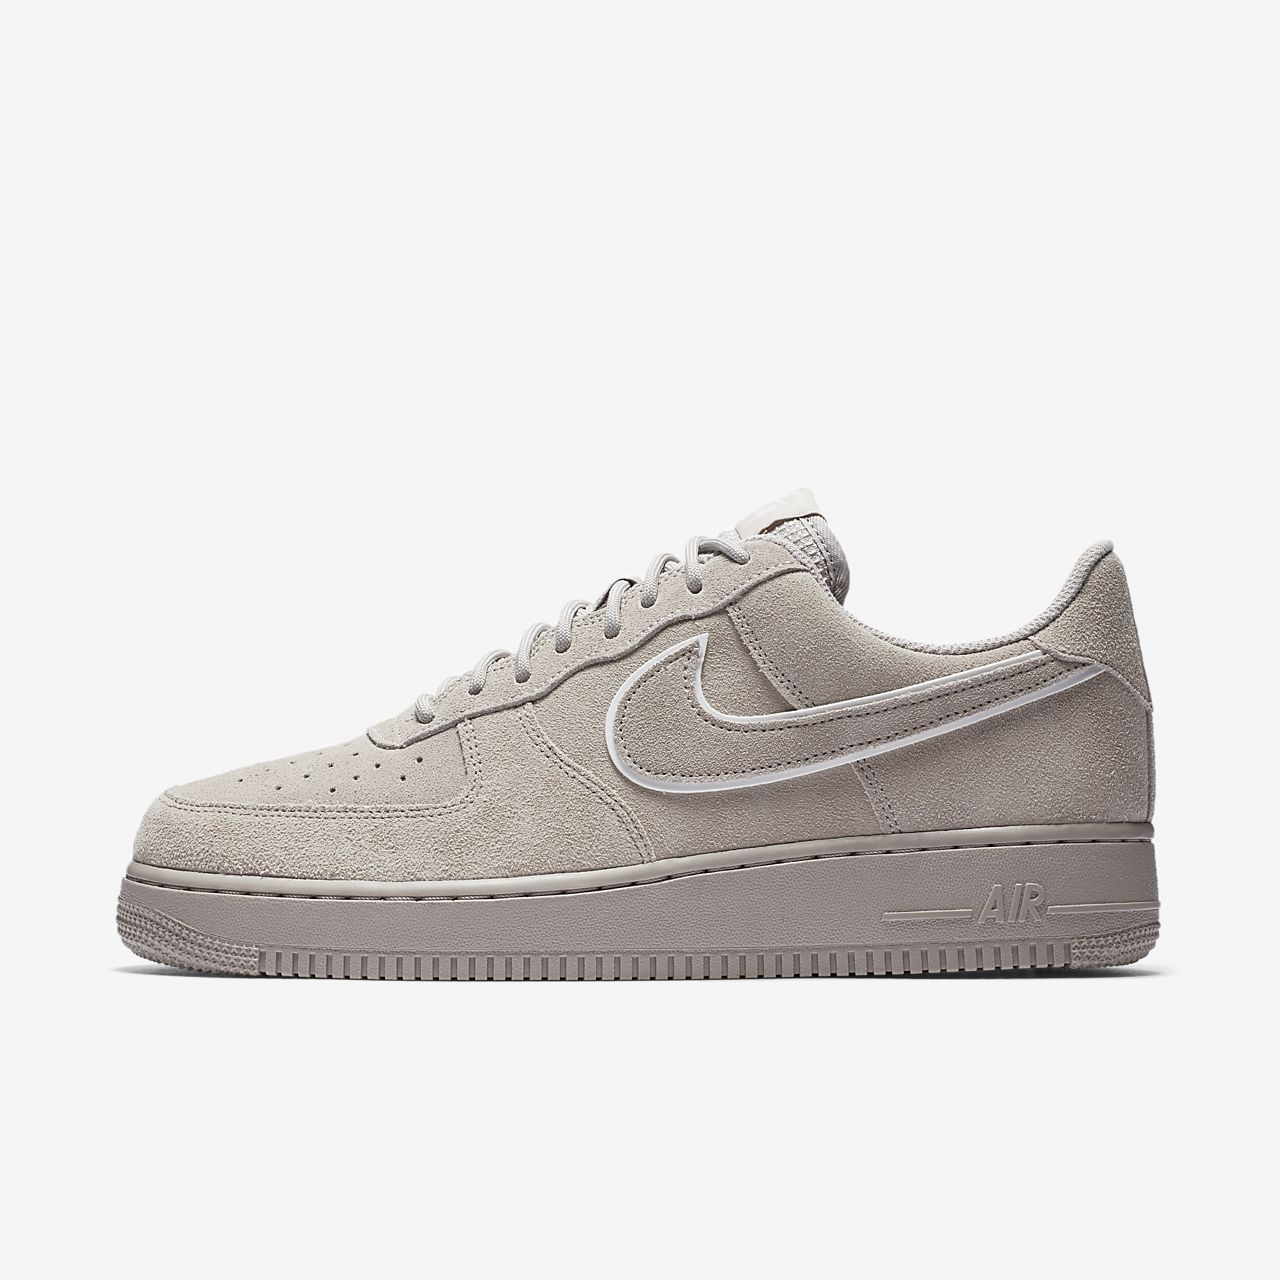 Nike Air Force 1 07 LV8 Suede Men's Shoe